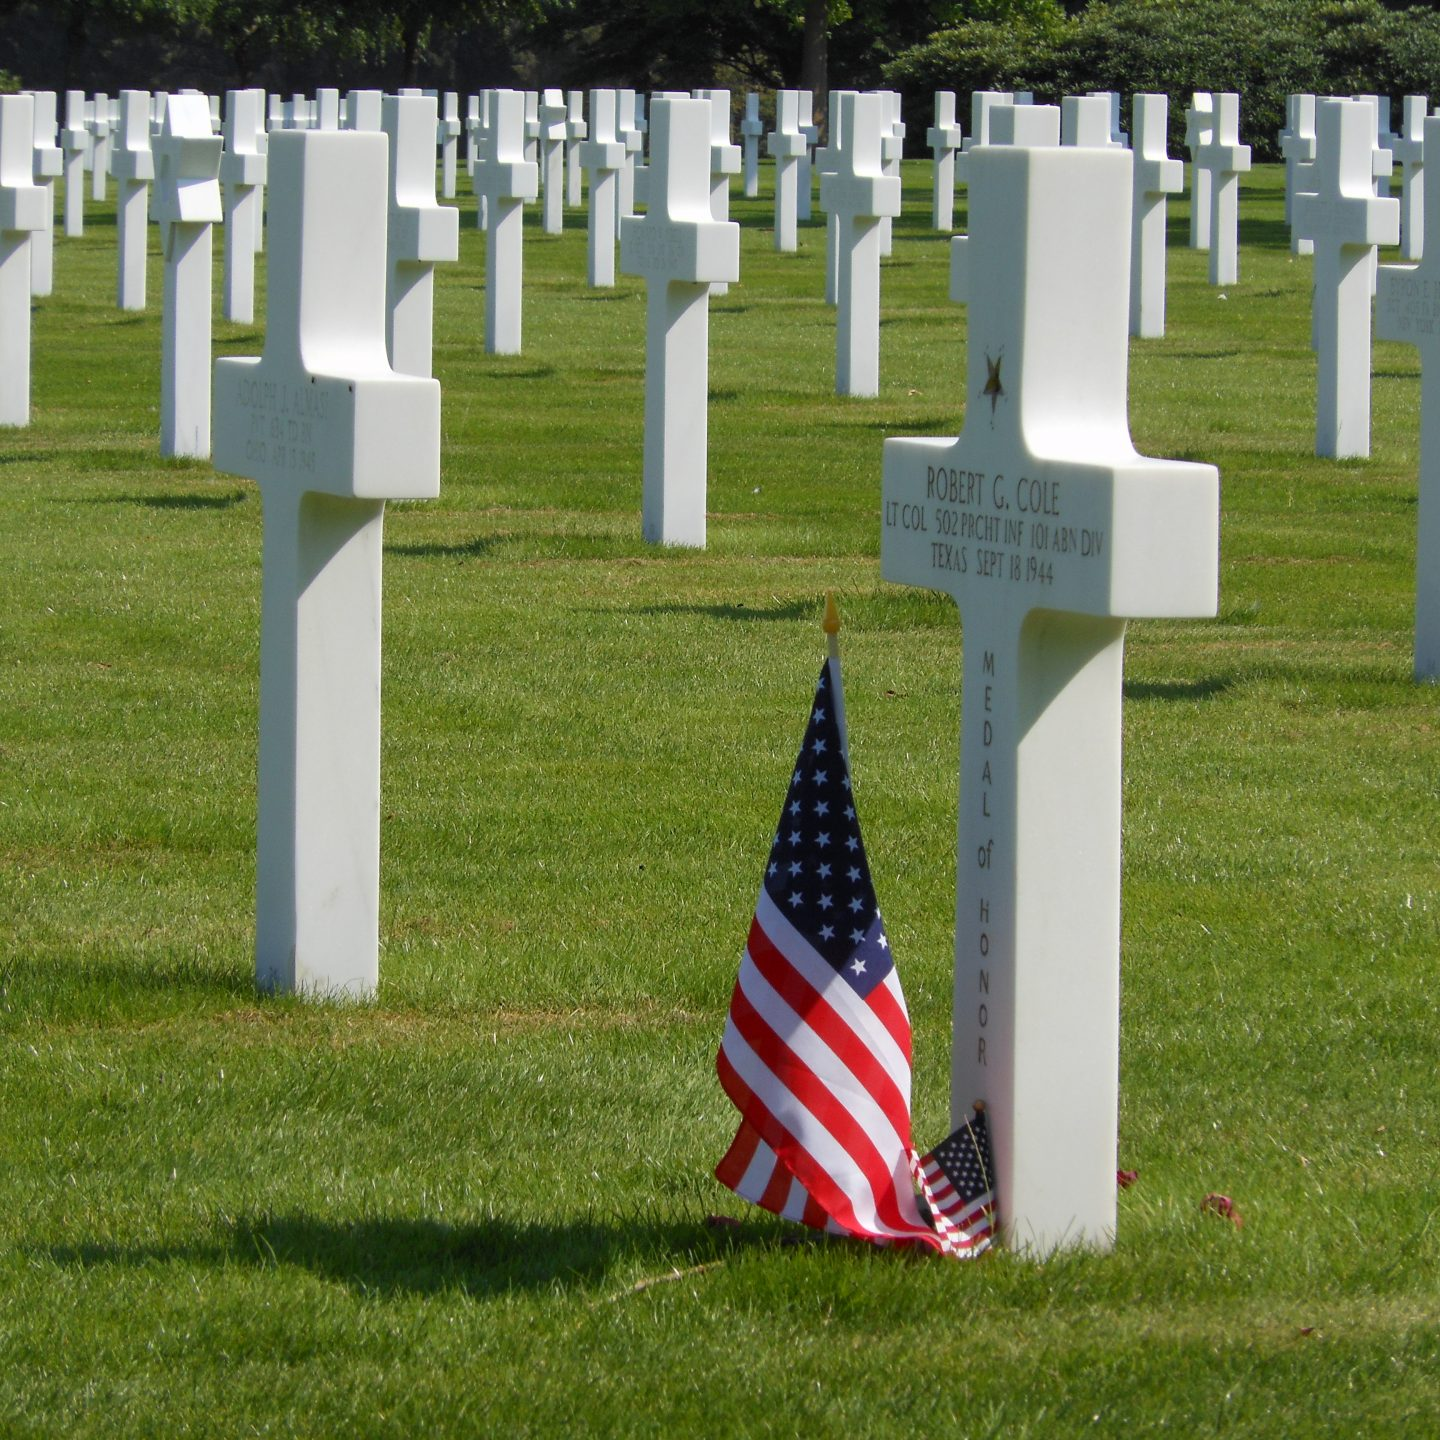 Reflecting on a Visit to the American Military Cemetery in The Netherlands